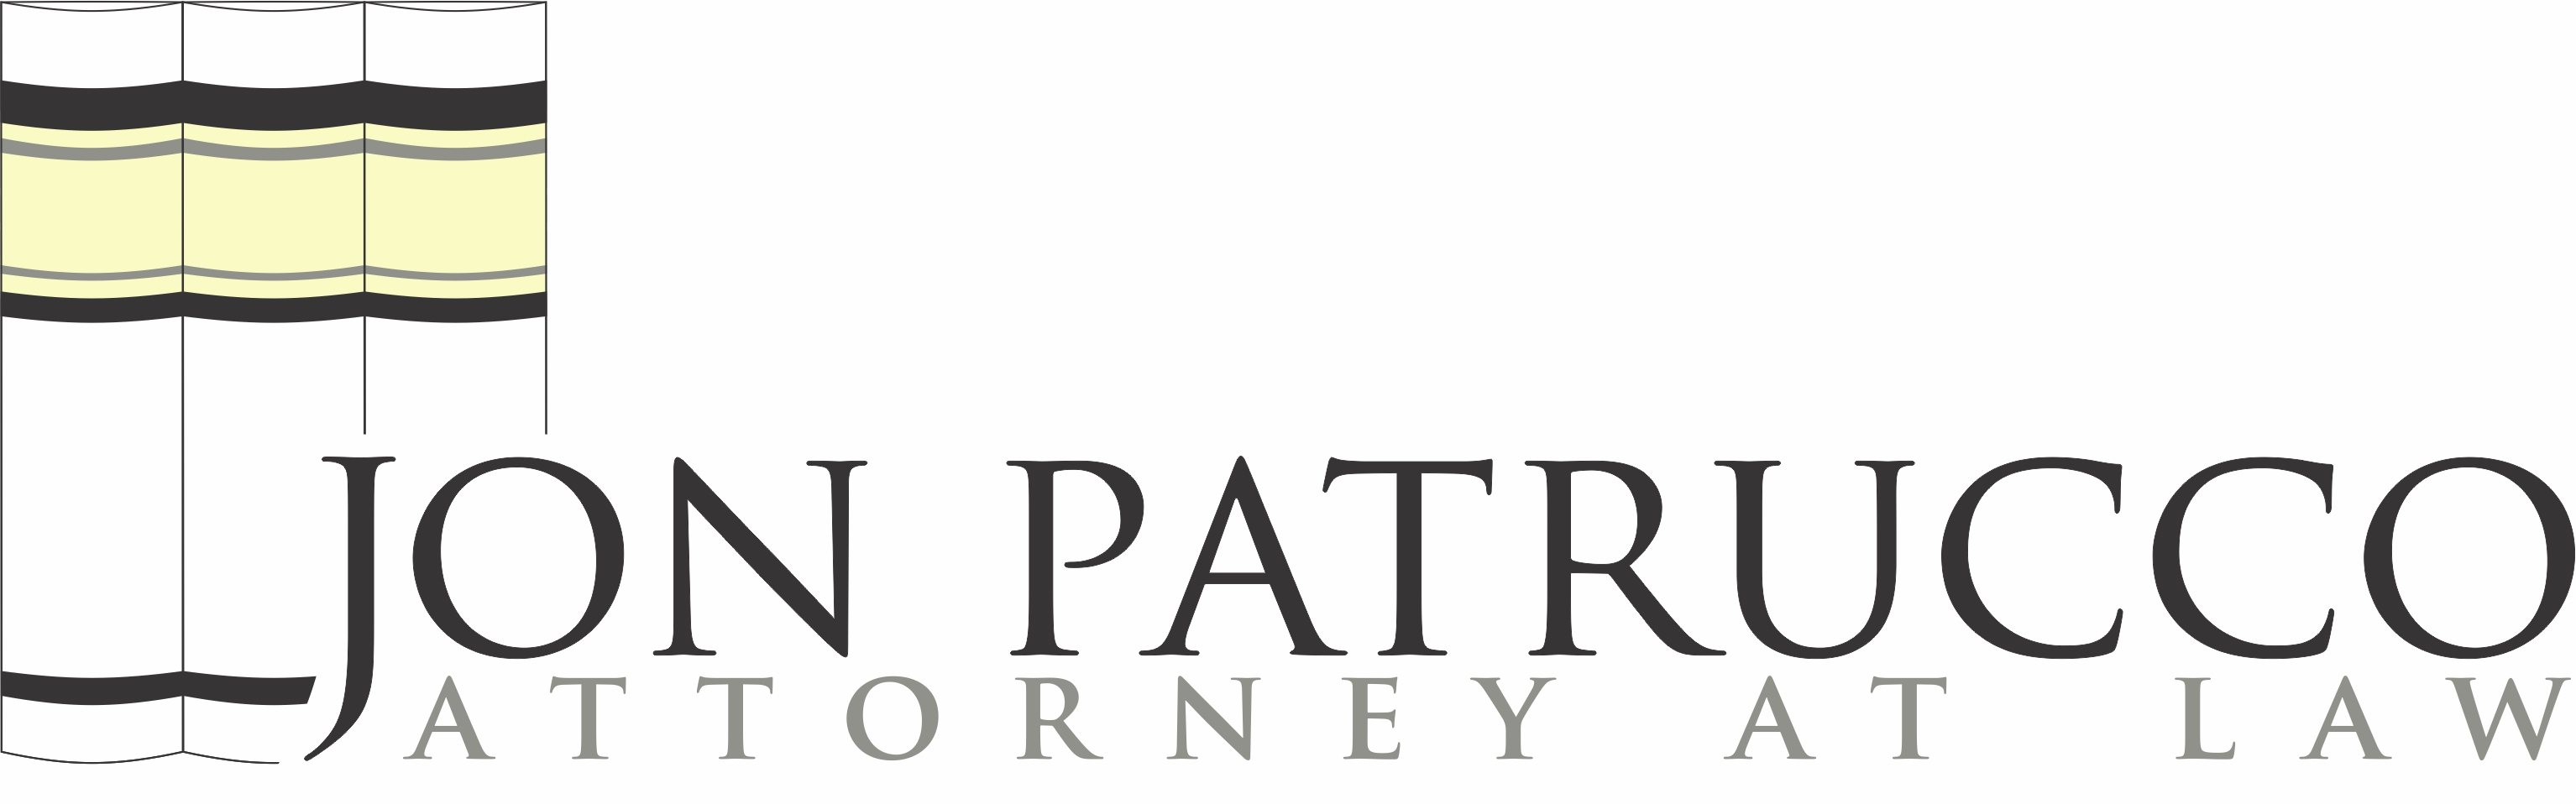 Jon Patrucco | Attorney at Law | Meriden, CT  Mobile Logo